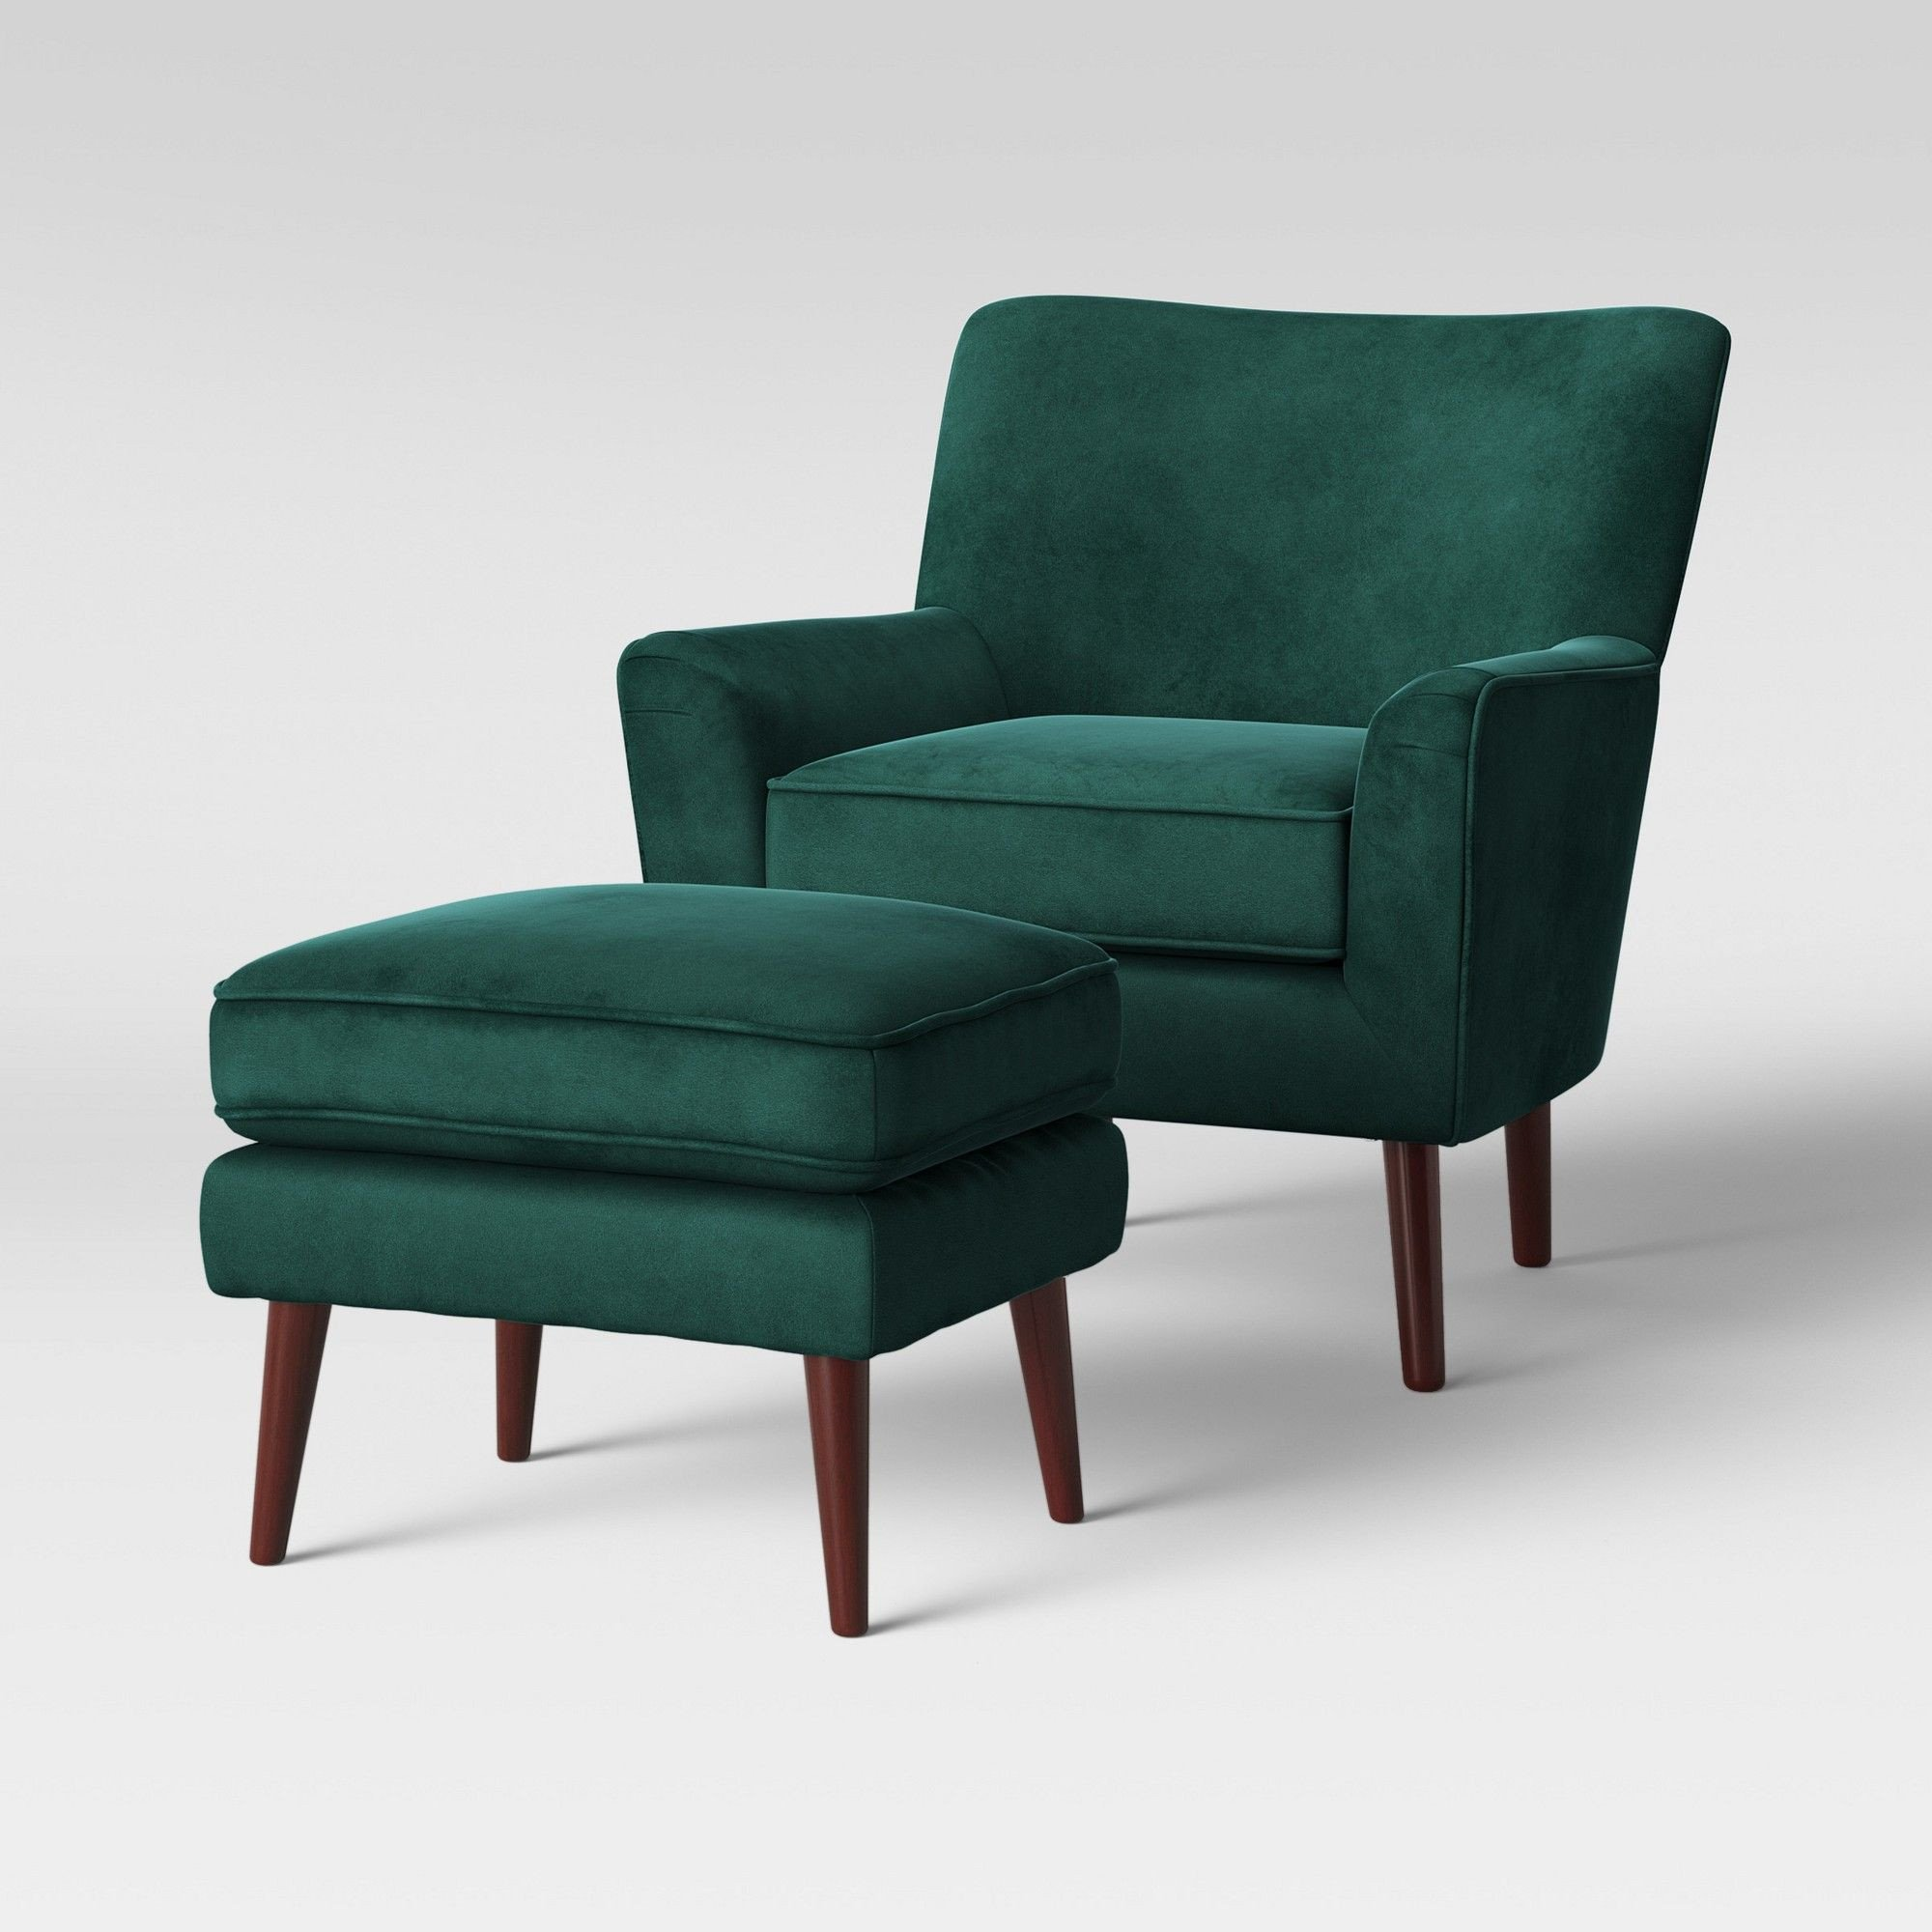 Small Comfy Chair for Bedroom Lovely 2pc Englund Chair and Ottoman Dark Green Velvet Project 62